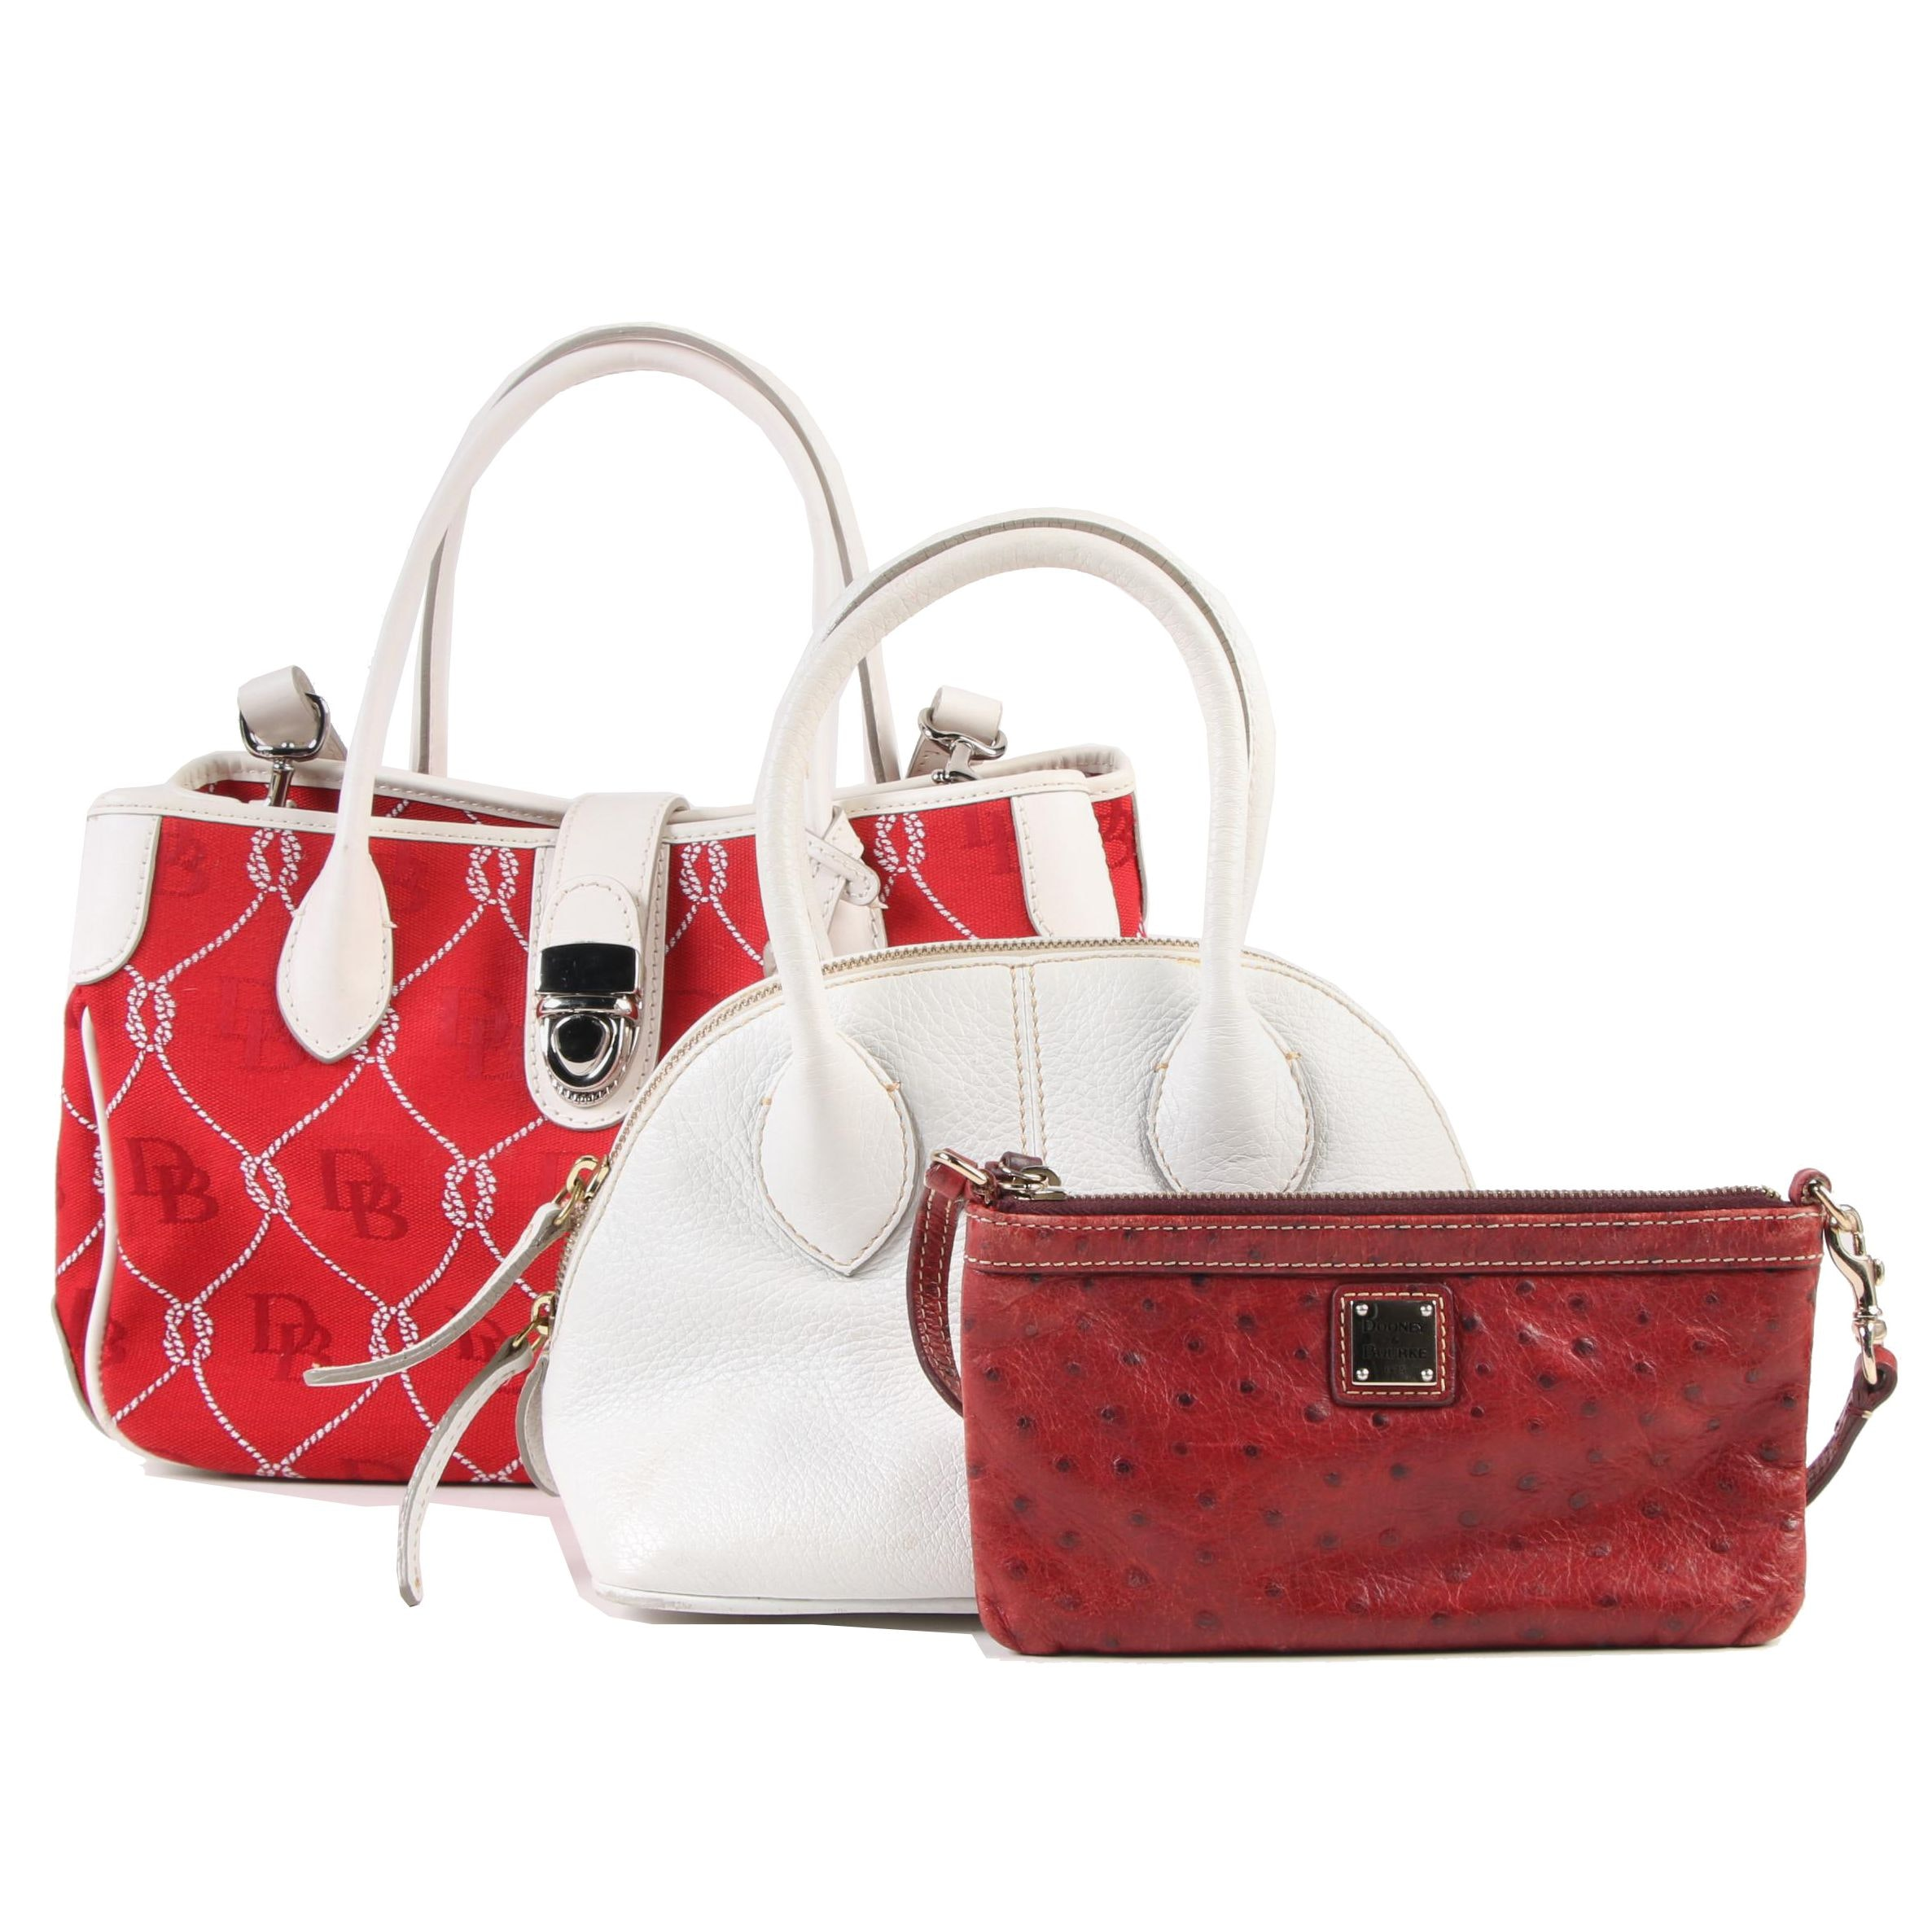 Dooney & Bourke Canvas and Leather Handbags with Ostrich Embossed Wristlet